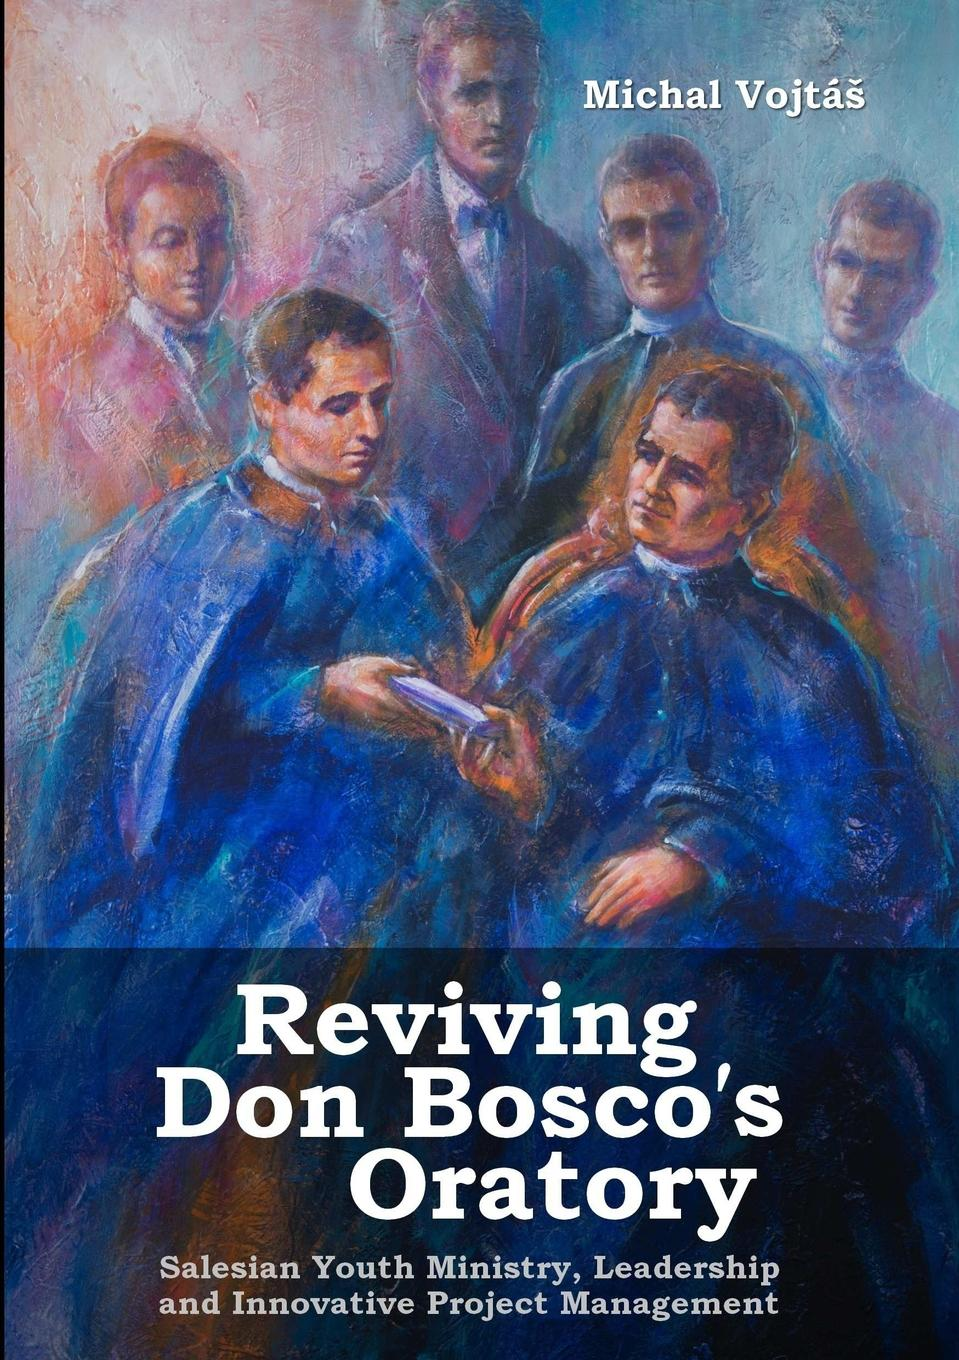 Michal Vojtáš Reviving Don Bosco.s Oratory. Salesian Youth Ministry, Leadership and Innovative Project Management rory burke project management leadership building creative teams